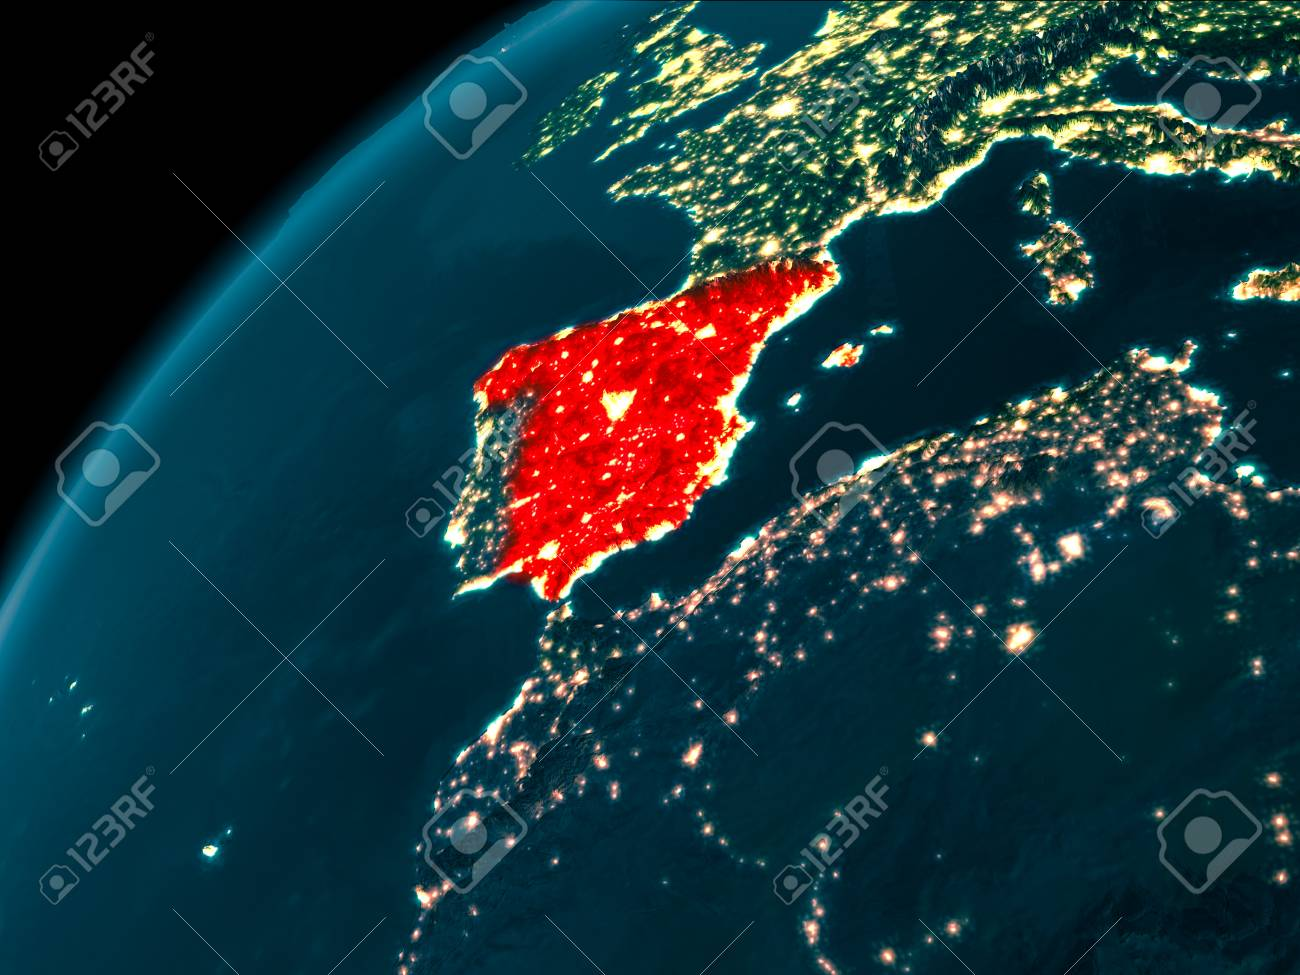 Night map of spain as seen from space on planet earth 3d illustration night map of spain as seen from space on planet earth 3d illustration gumiabroncs Image collections